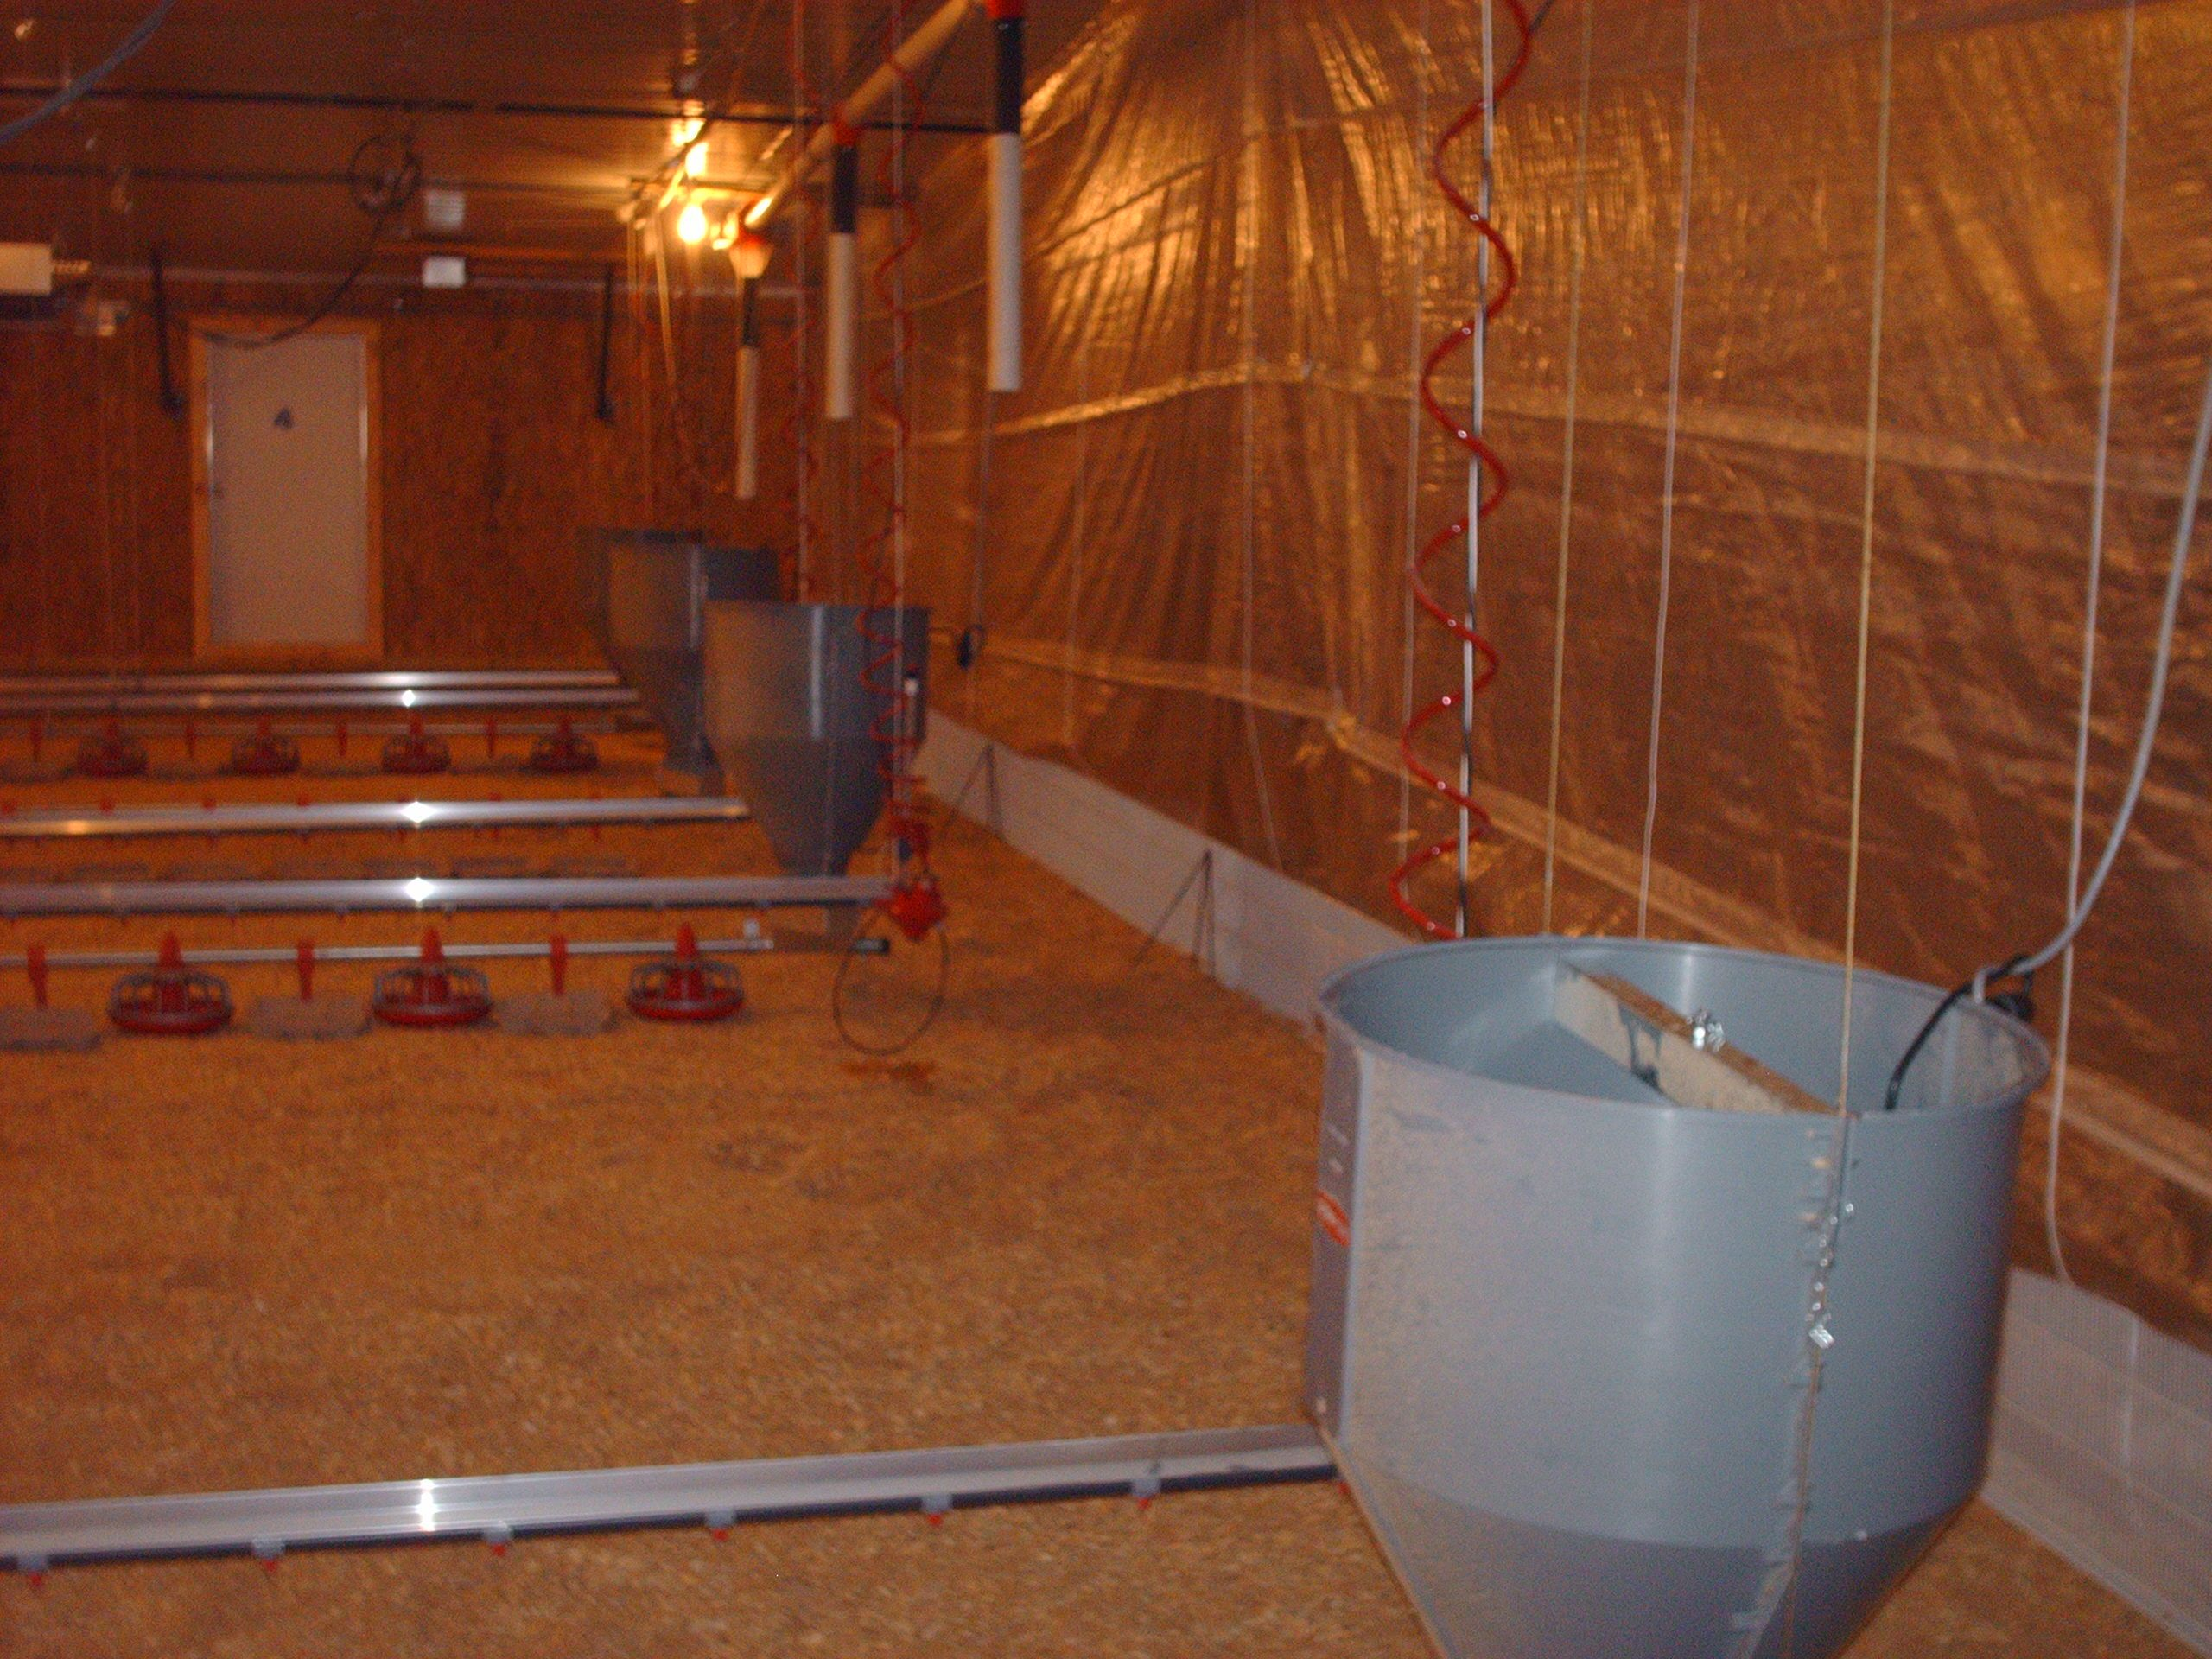 Simmons 60' x 600' with 3 feed hoppers just after installation